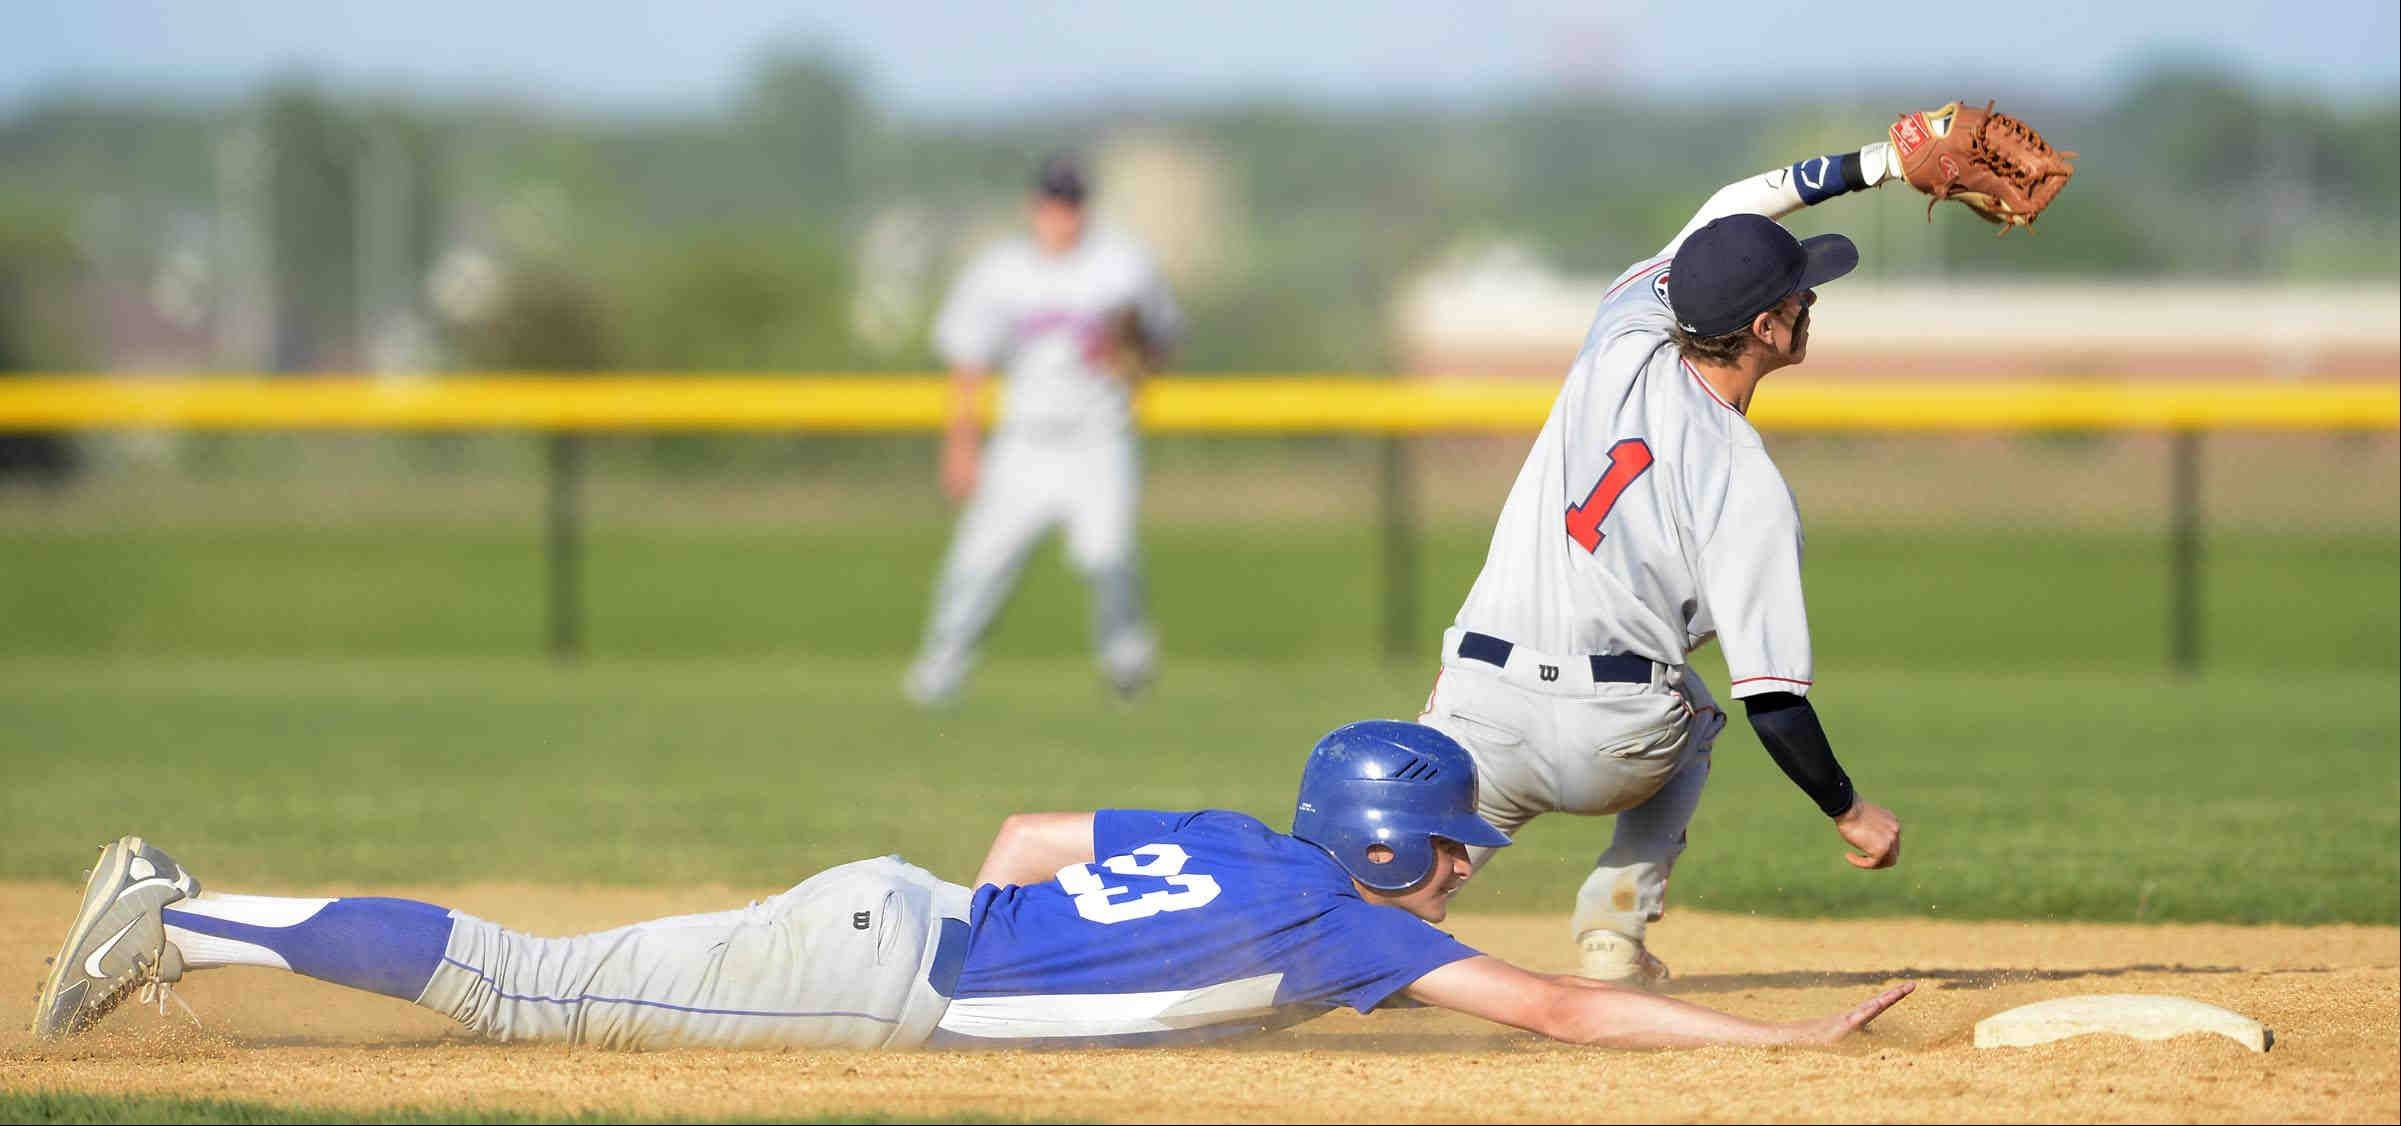 Marmion Academy's Alex Troop reaches back safely for second base as the pick off throw from the catcher goes over West Aurora shortstop Michael Golich Monday in Aurora.